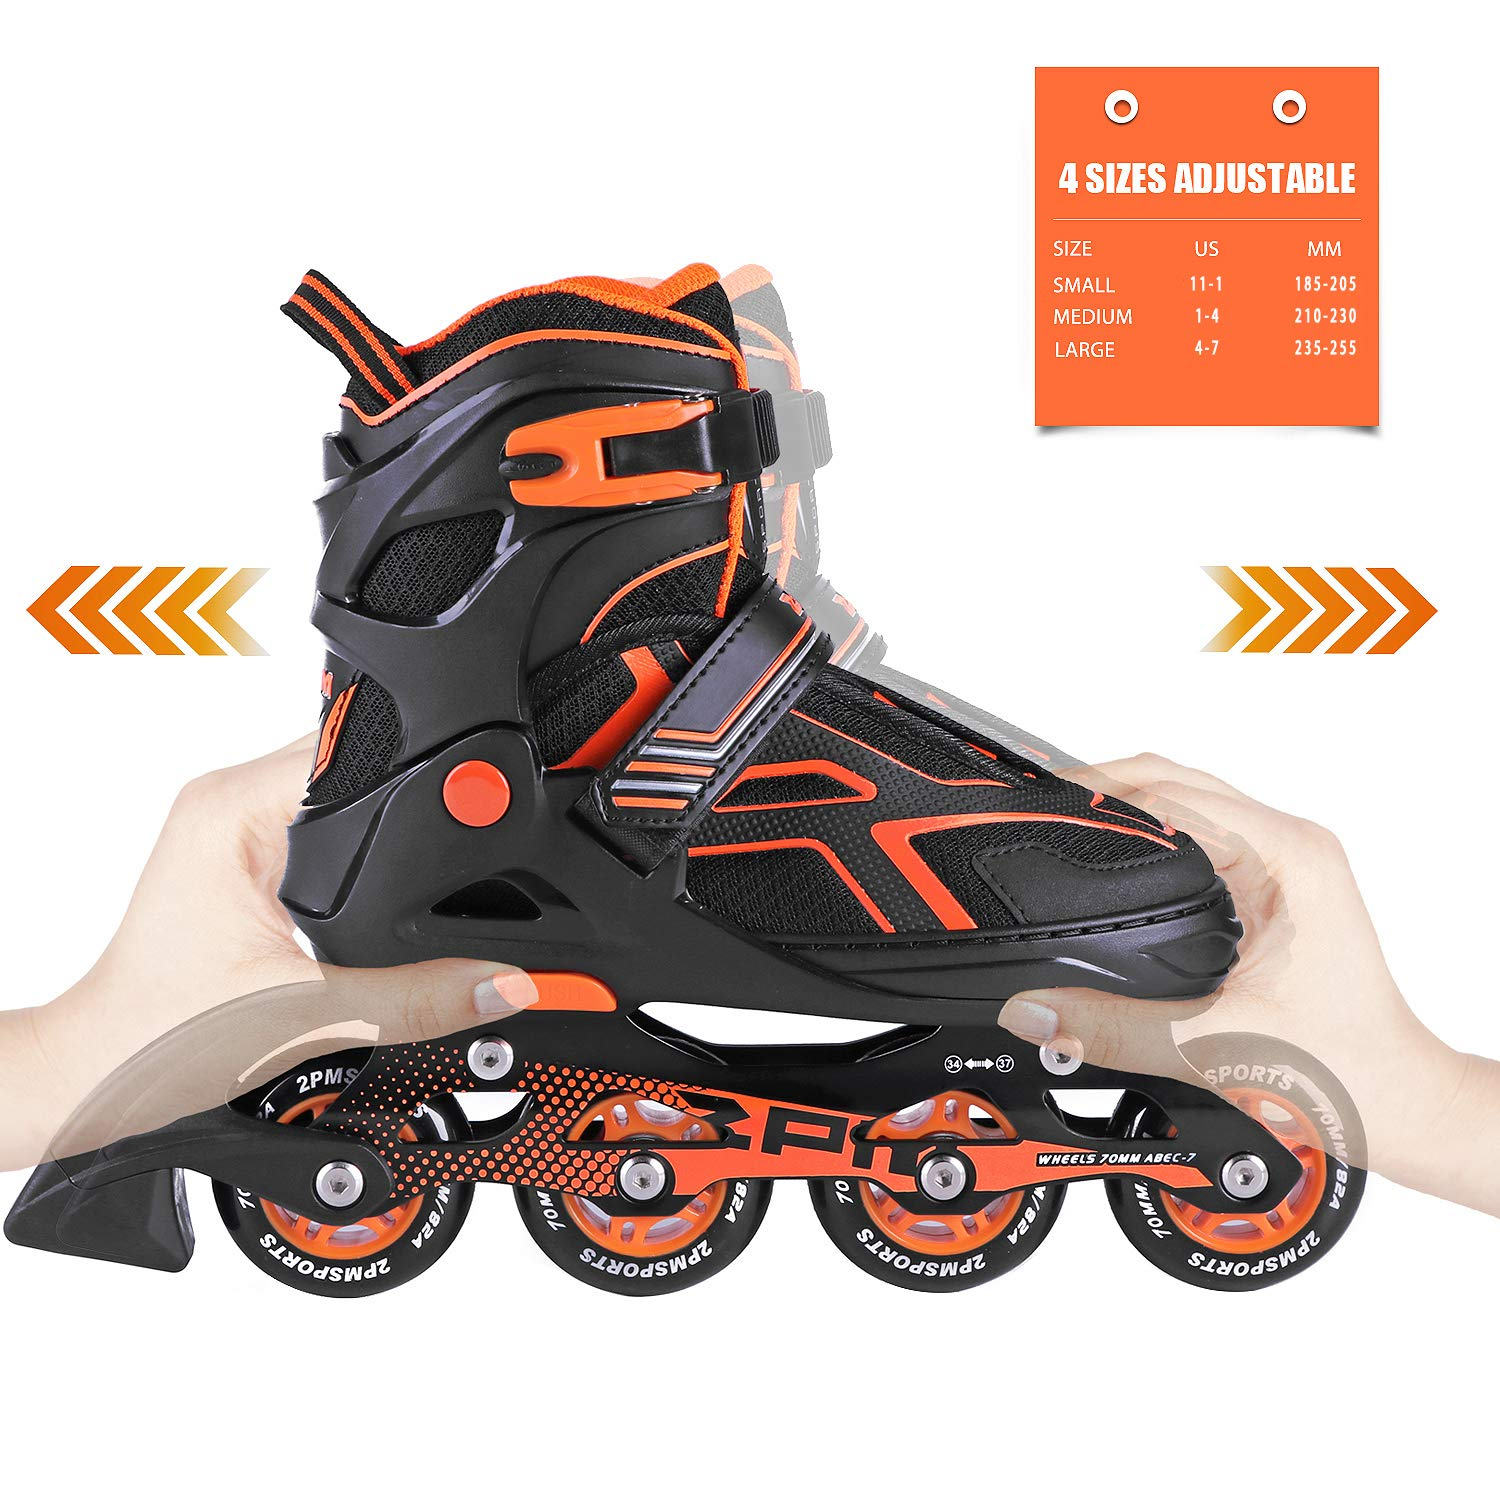 2PM SPORTS Torinx Orange Black Boys Adjustable Inline Skates, Fun Skates for Kids, Beginner Roller Skates for Girls, Men and Ladies - Medium (US 2-5) by 2PM SPORTS (Image #2)